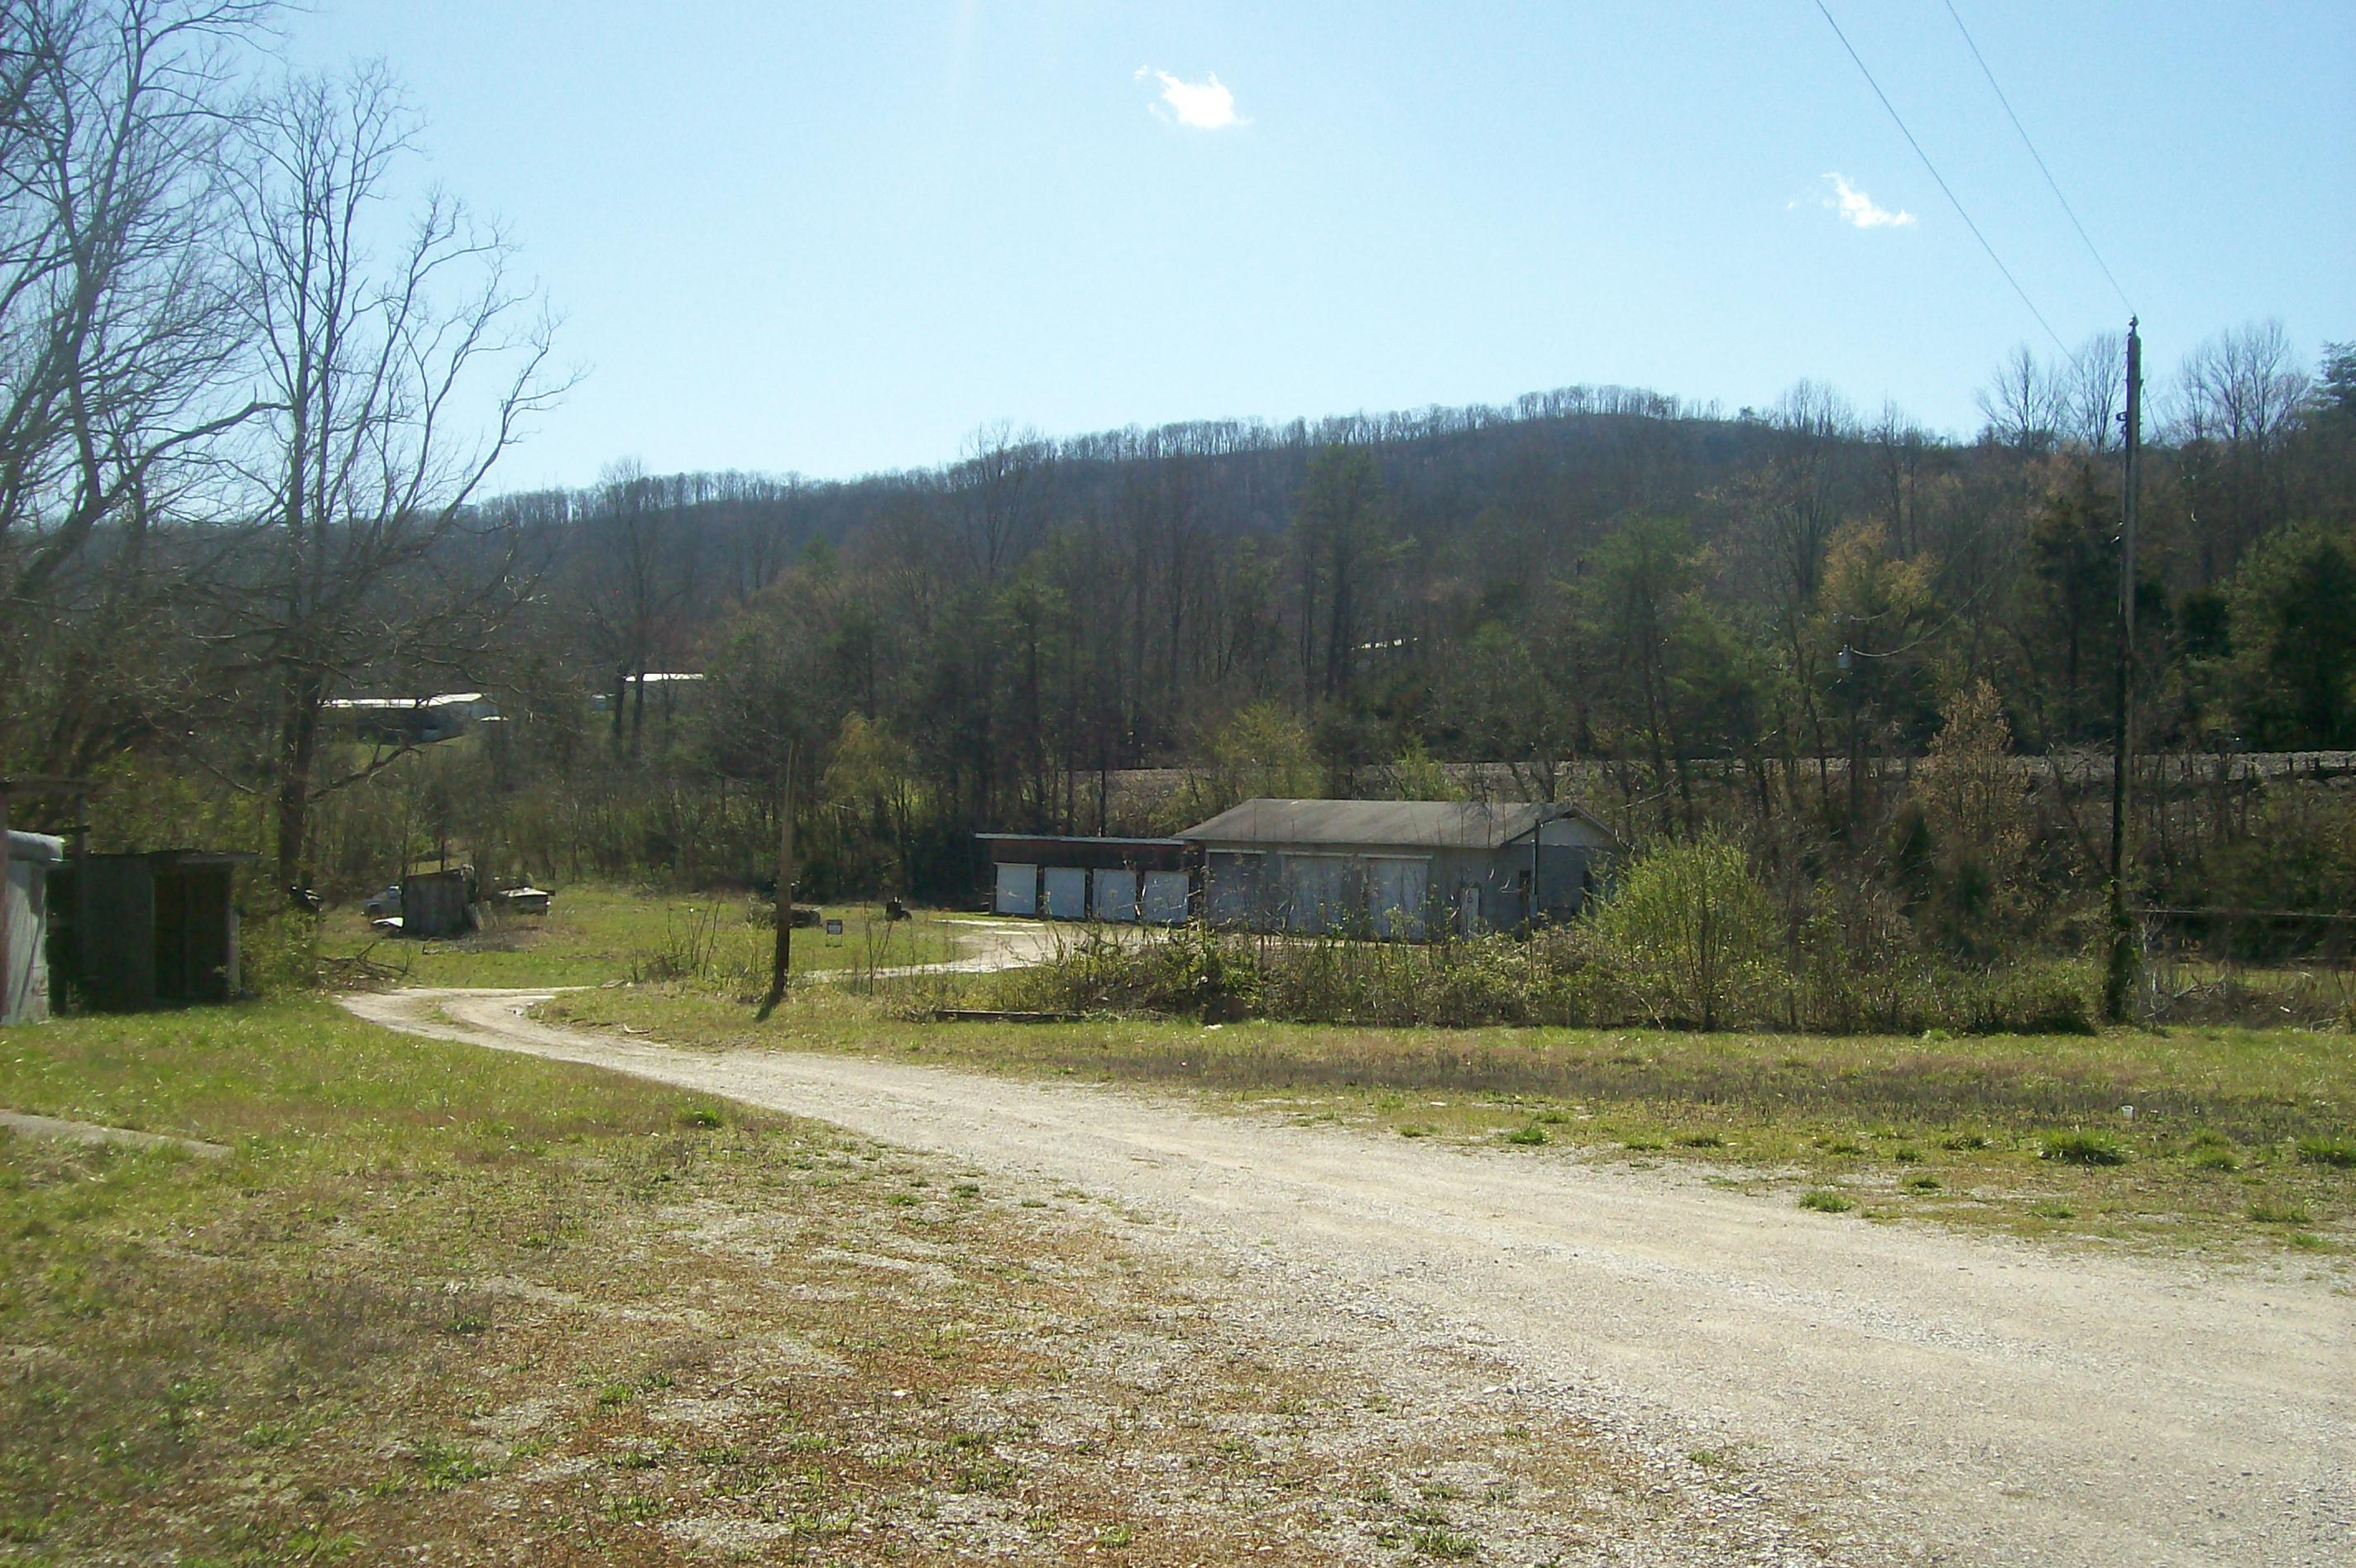 20190504143607822804000000-o Rocky Top anderson county homes for sale